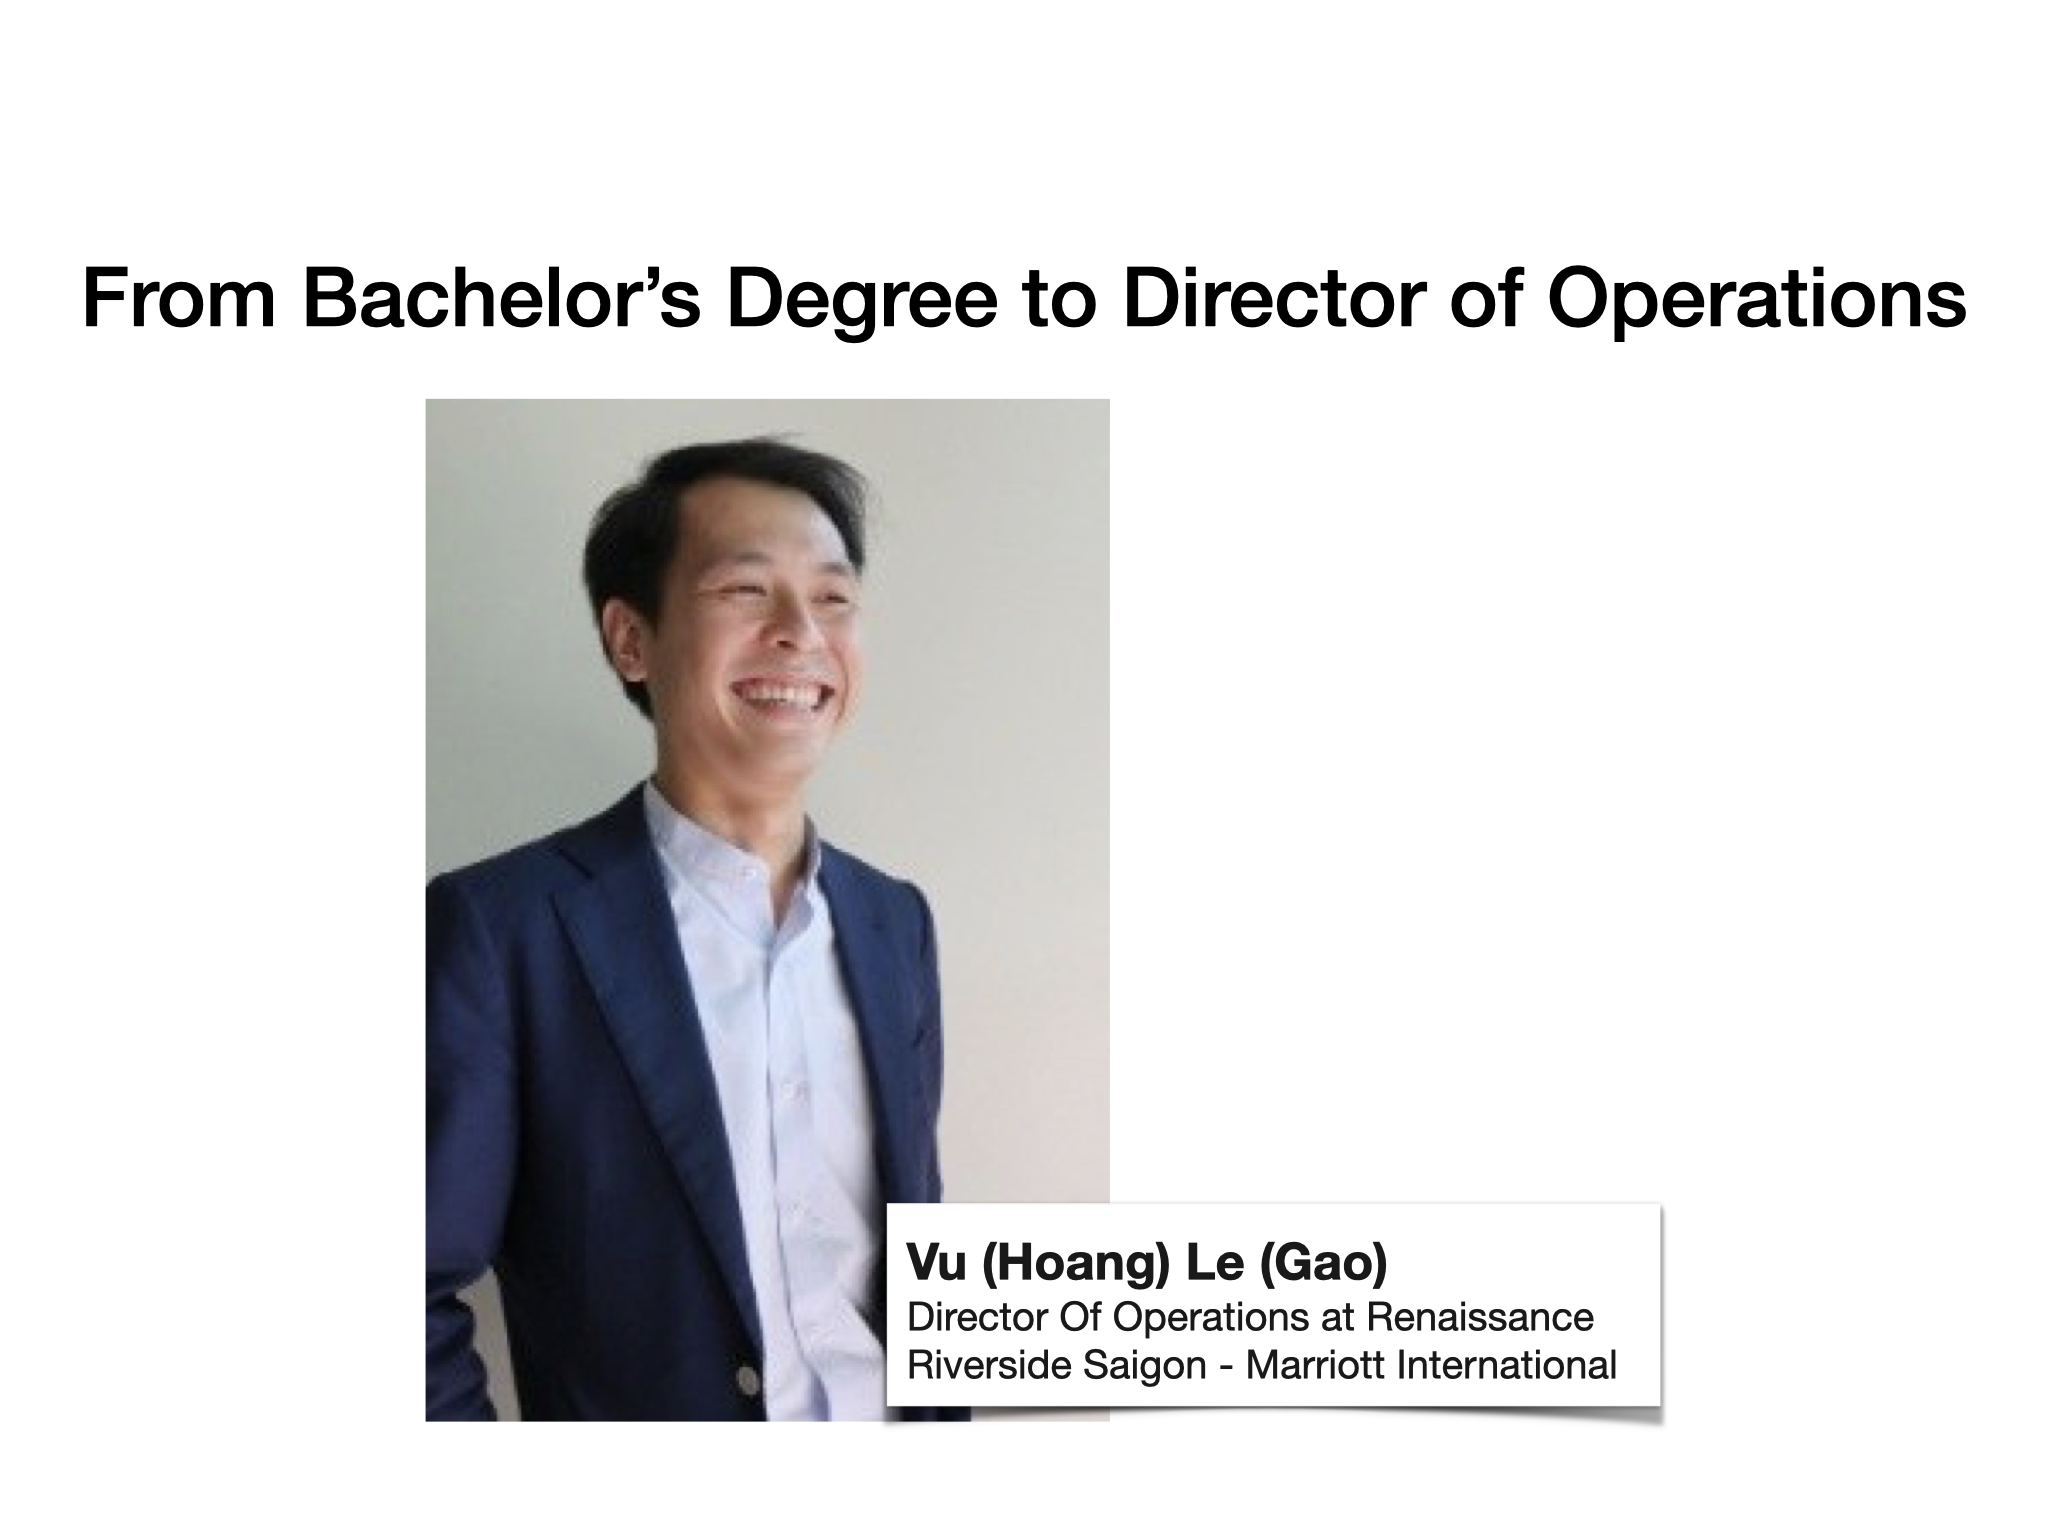 Vu (Hoang) Le (Gao) – From Bachelor's Degree to Director of Operations